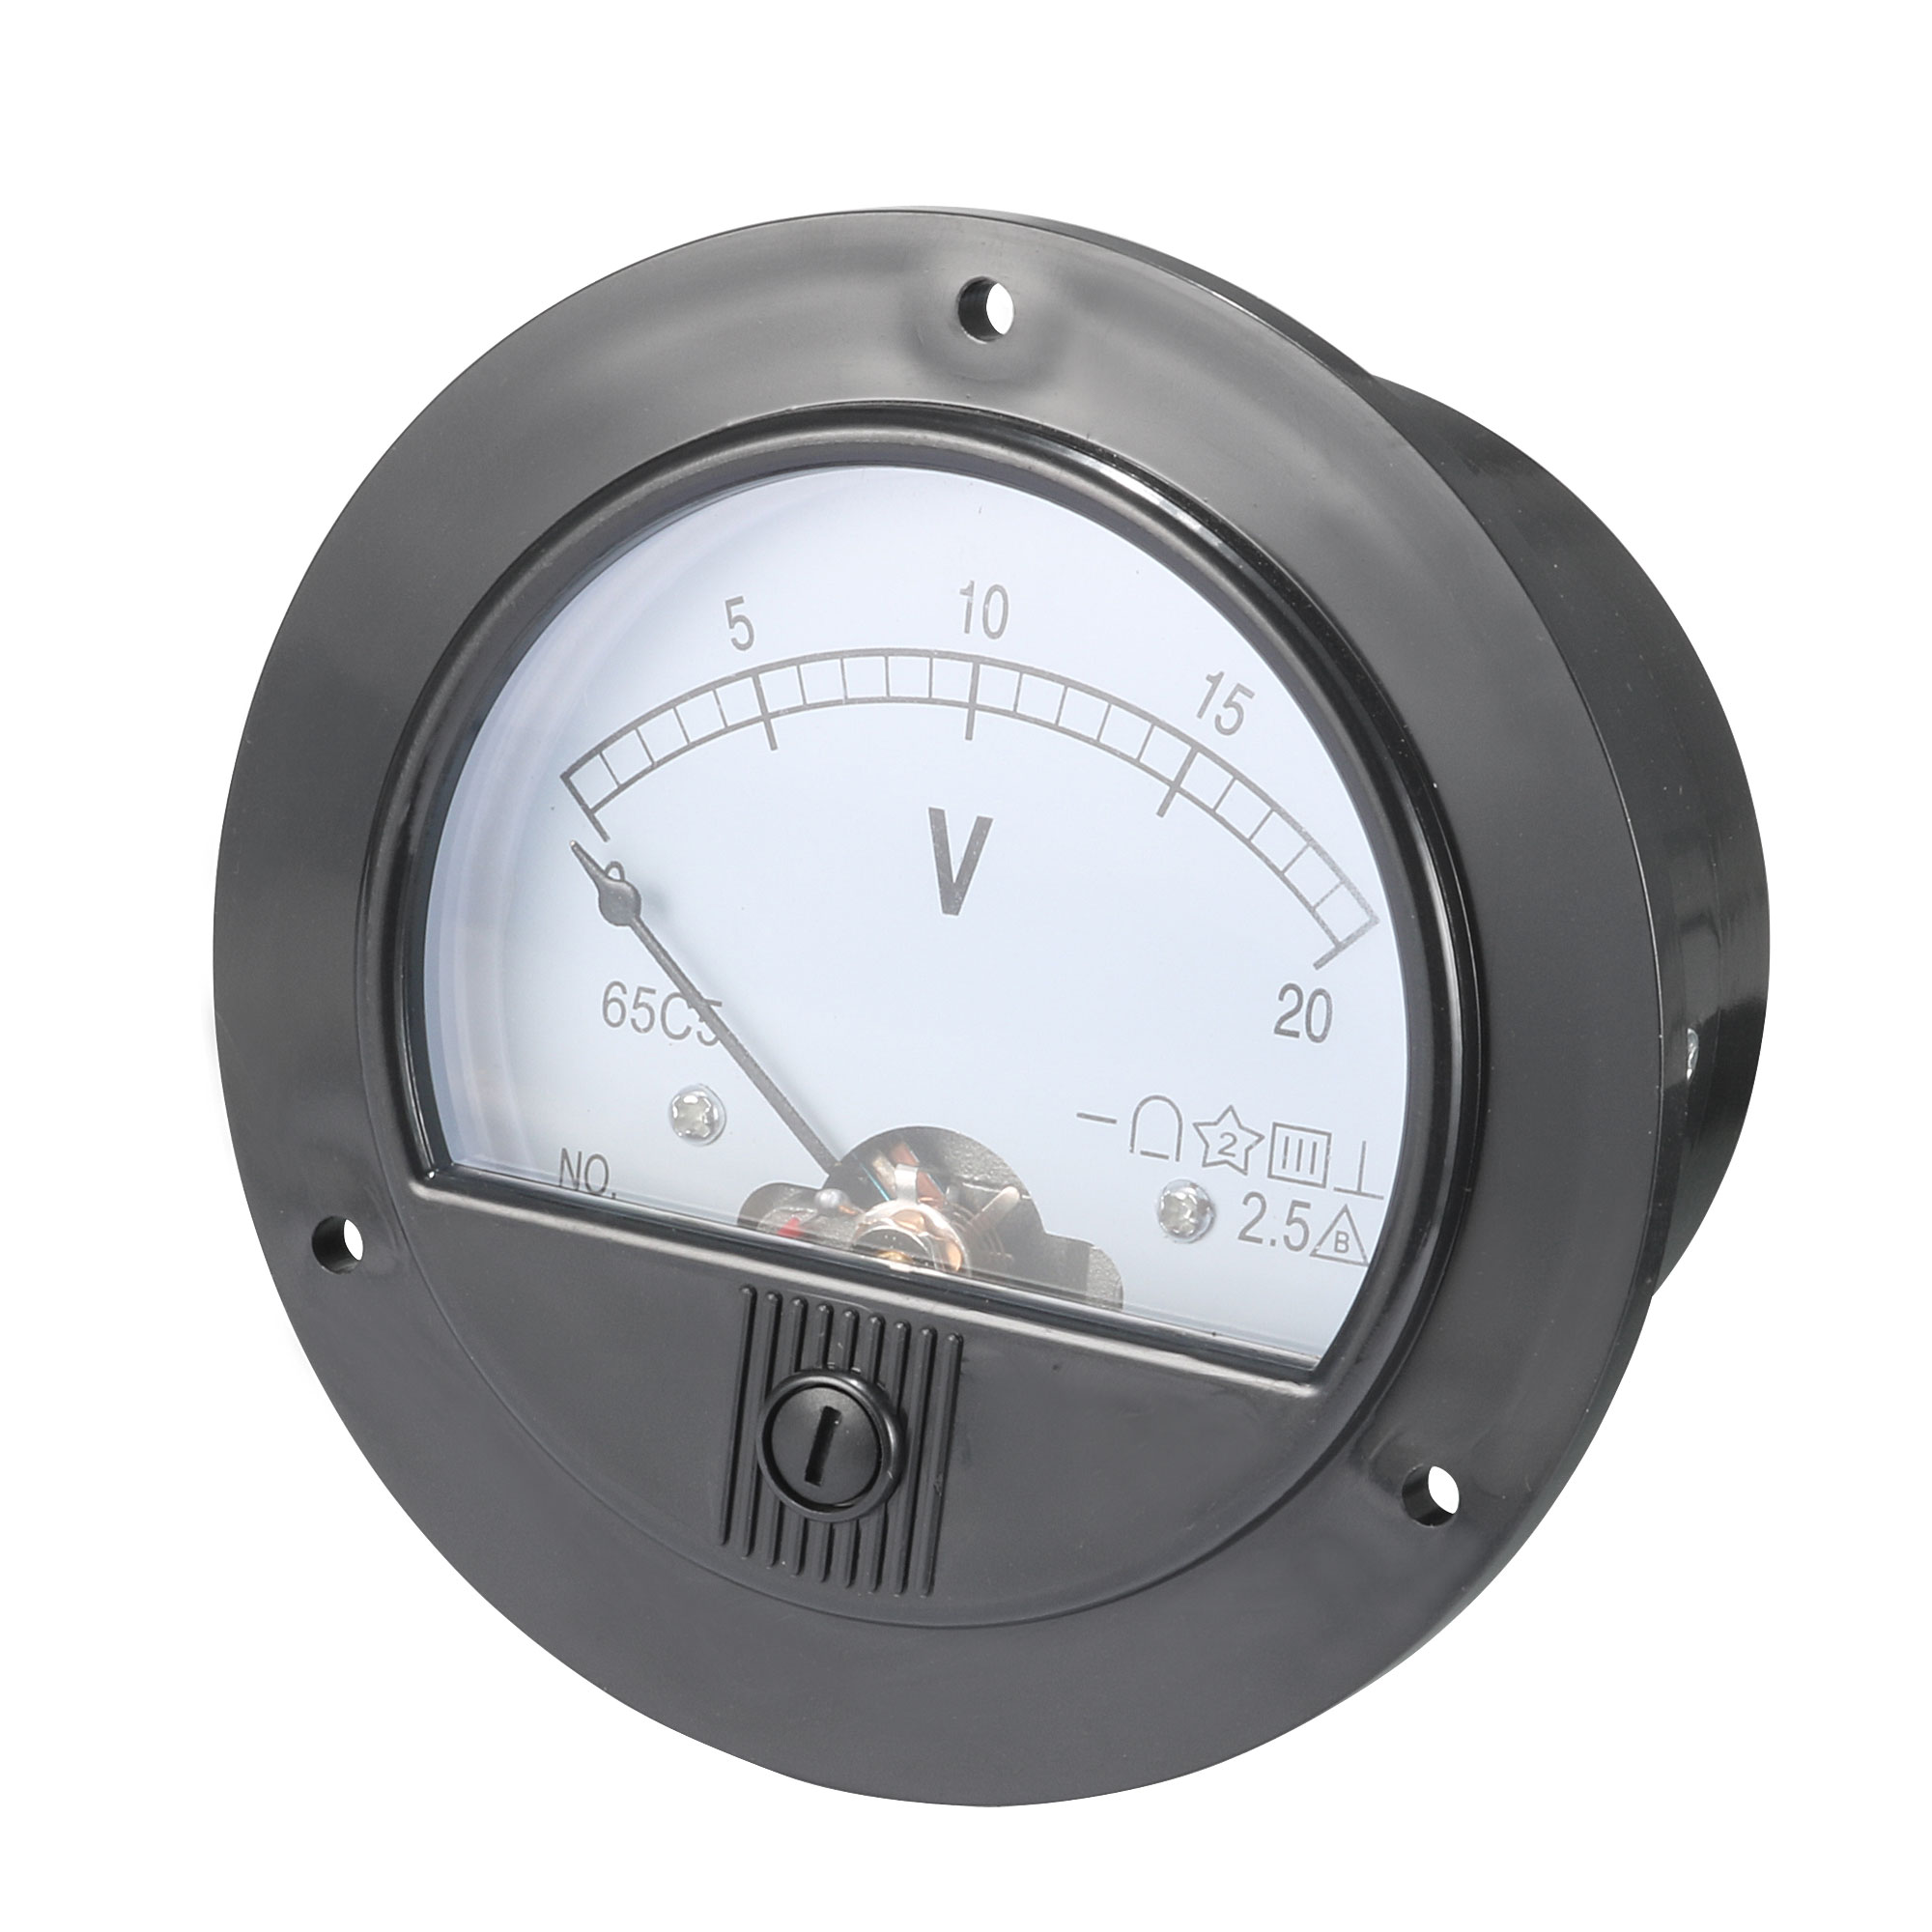 DC 0-20V Round Analogue Panel Meter Volt Voltage Gauge Analog Voltmeter